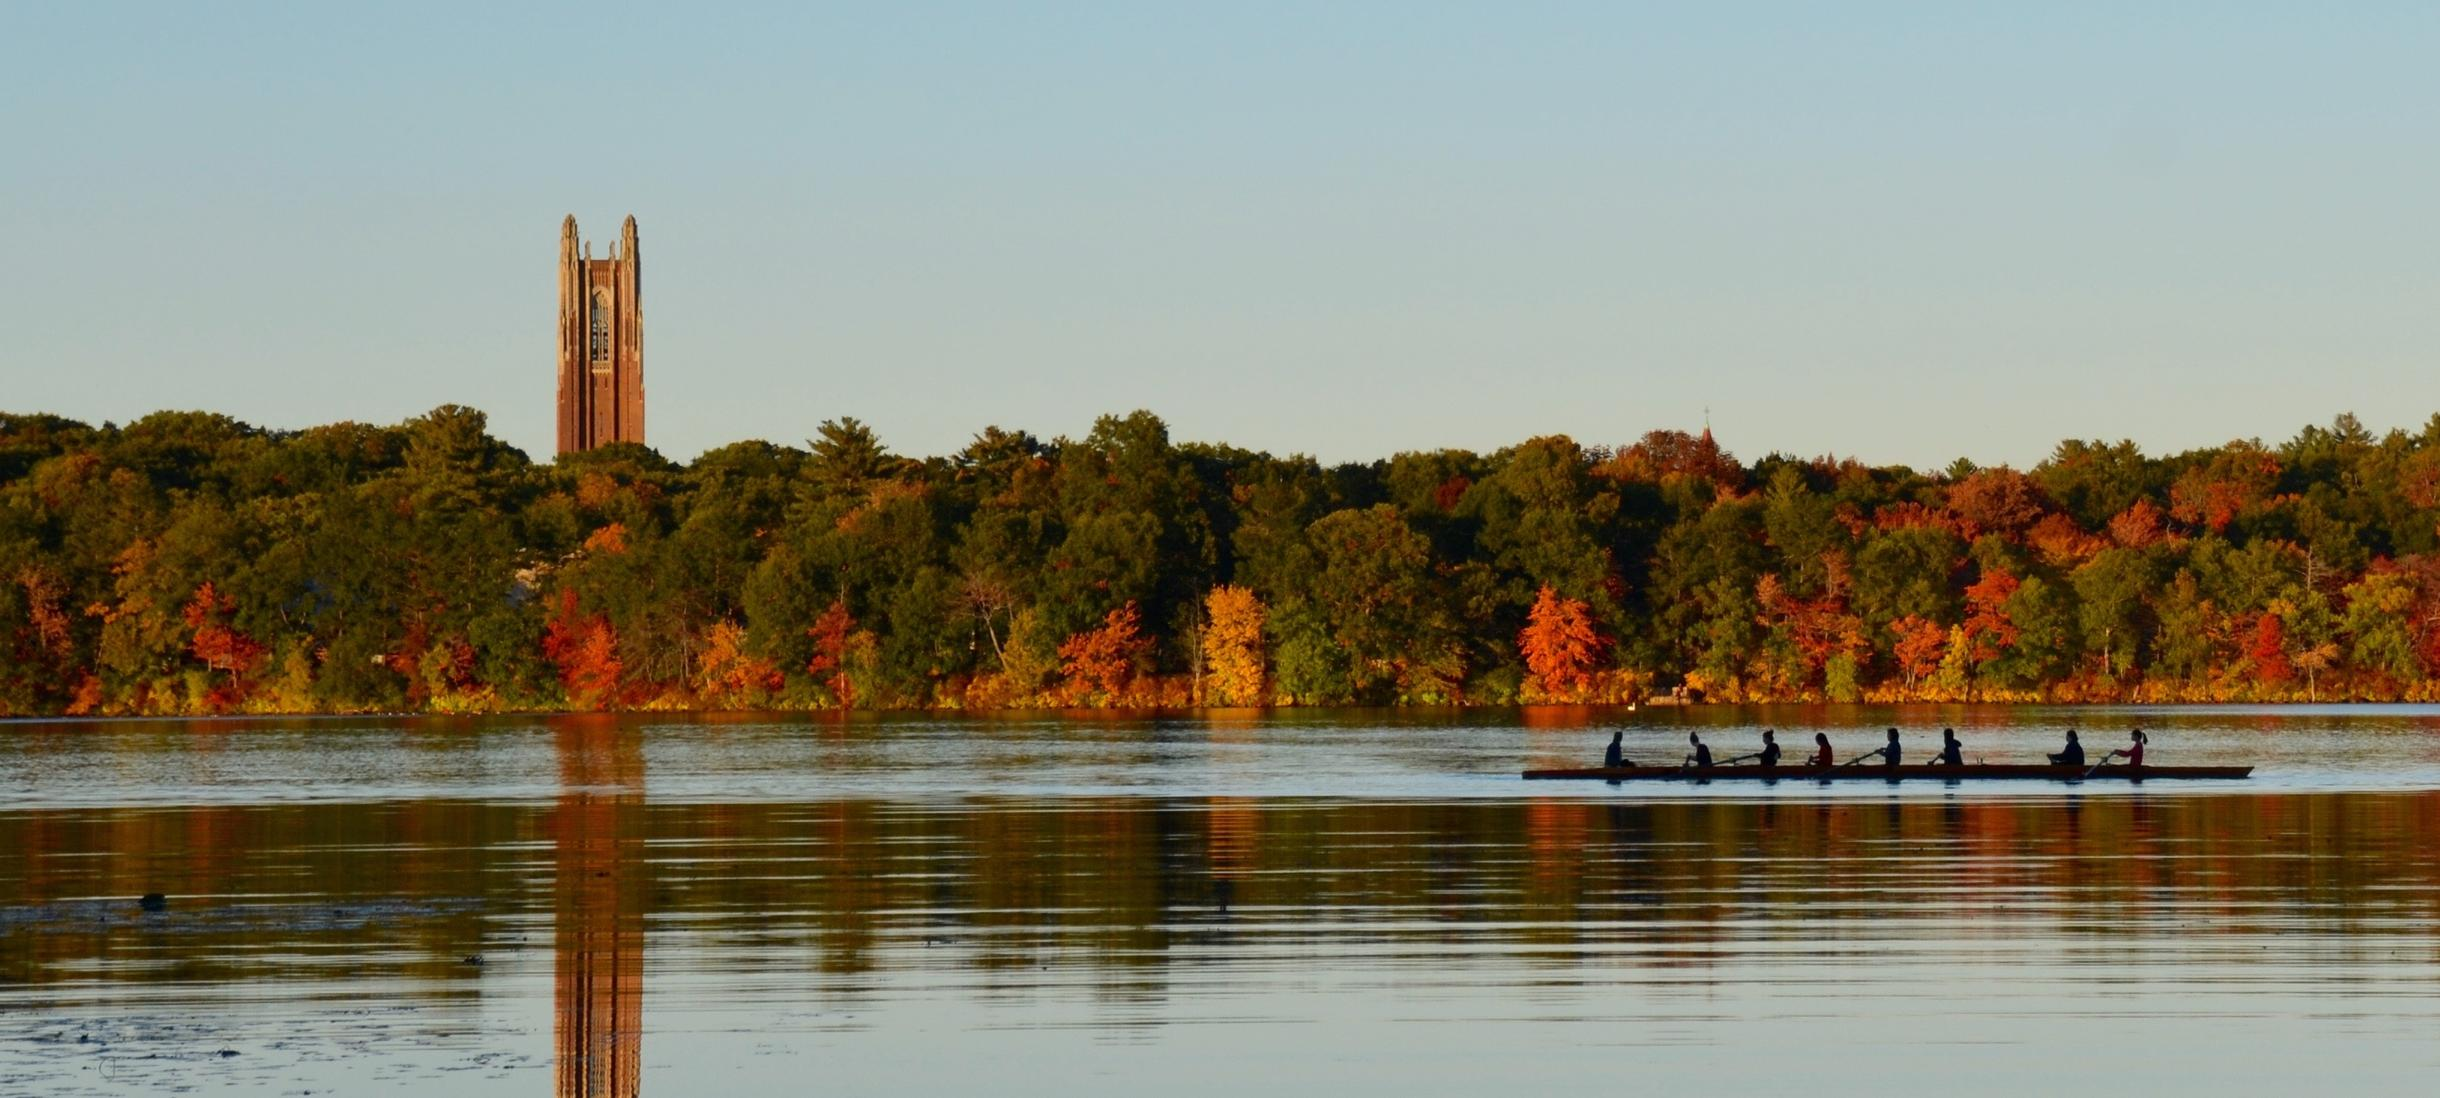 Picture of rowers, Wellesley tower, Lake Waban, autumn.